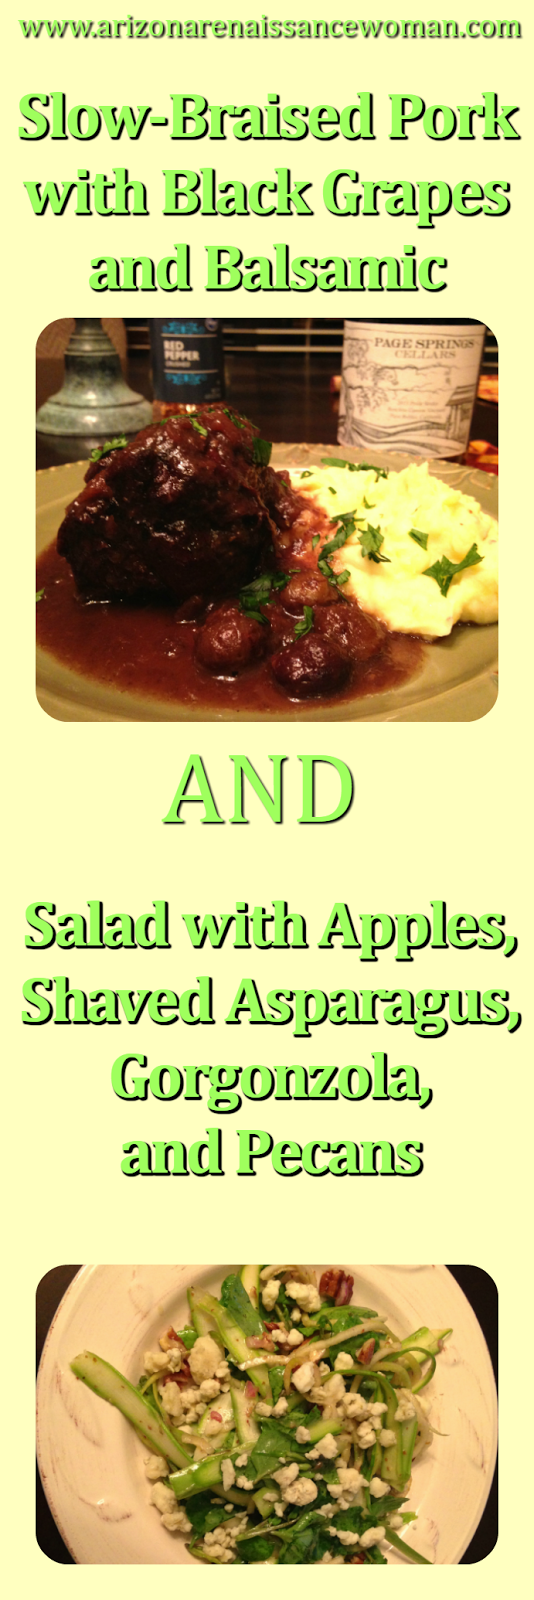 Slow Braised Pork with Black Grapes and Balsamic and Apple Salad with Shaved Asparagus, Gorgonzola, and Pecans Collage